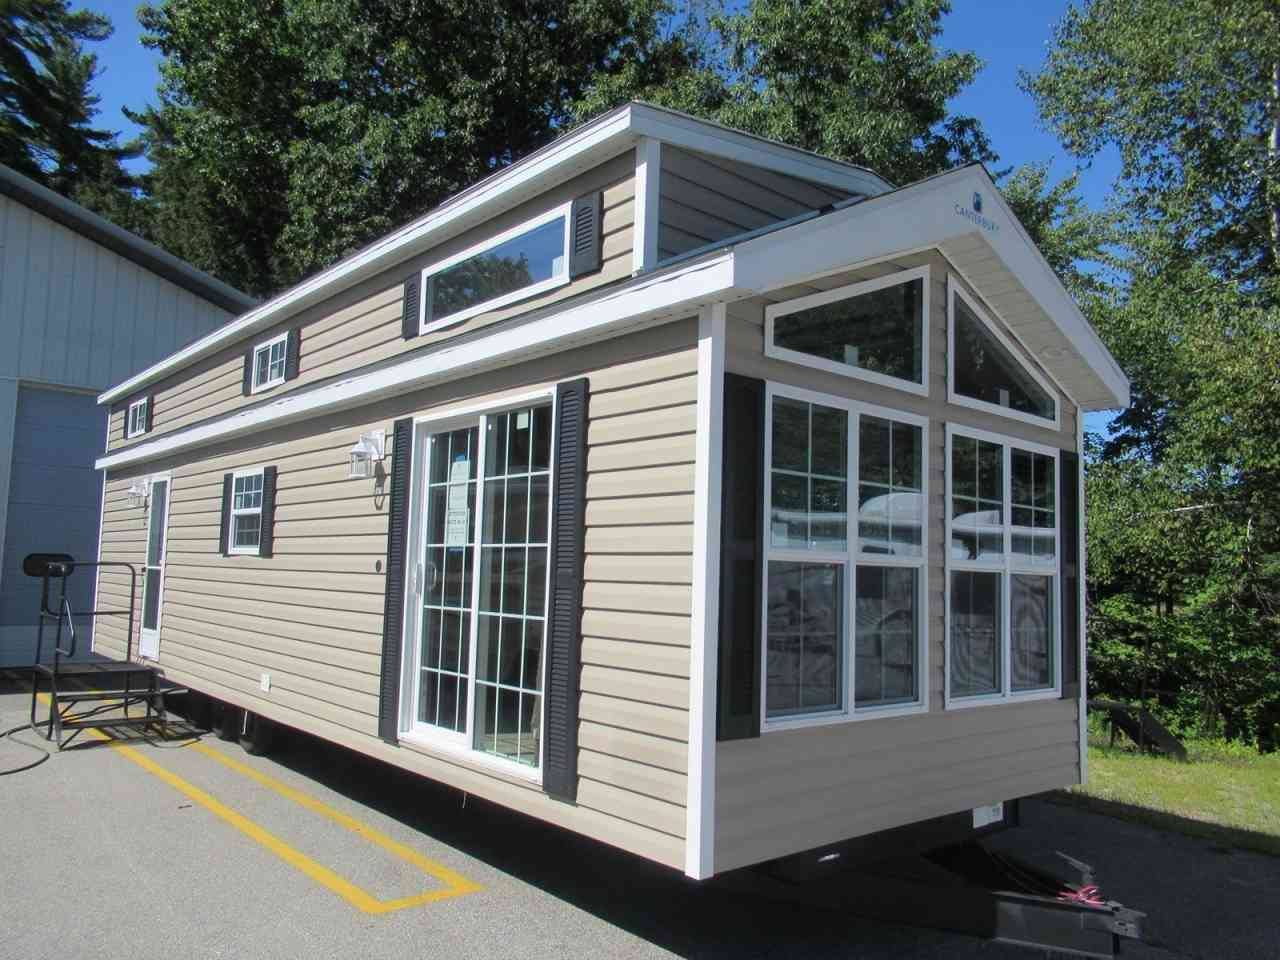 Park Models For Sale Canterbury Rv New Hampshire Rv Dealer